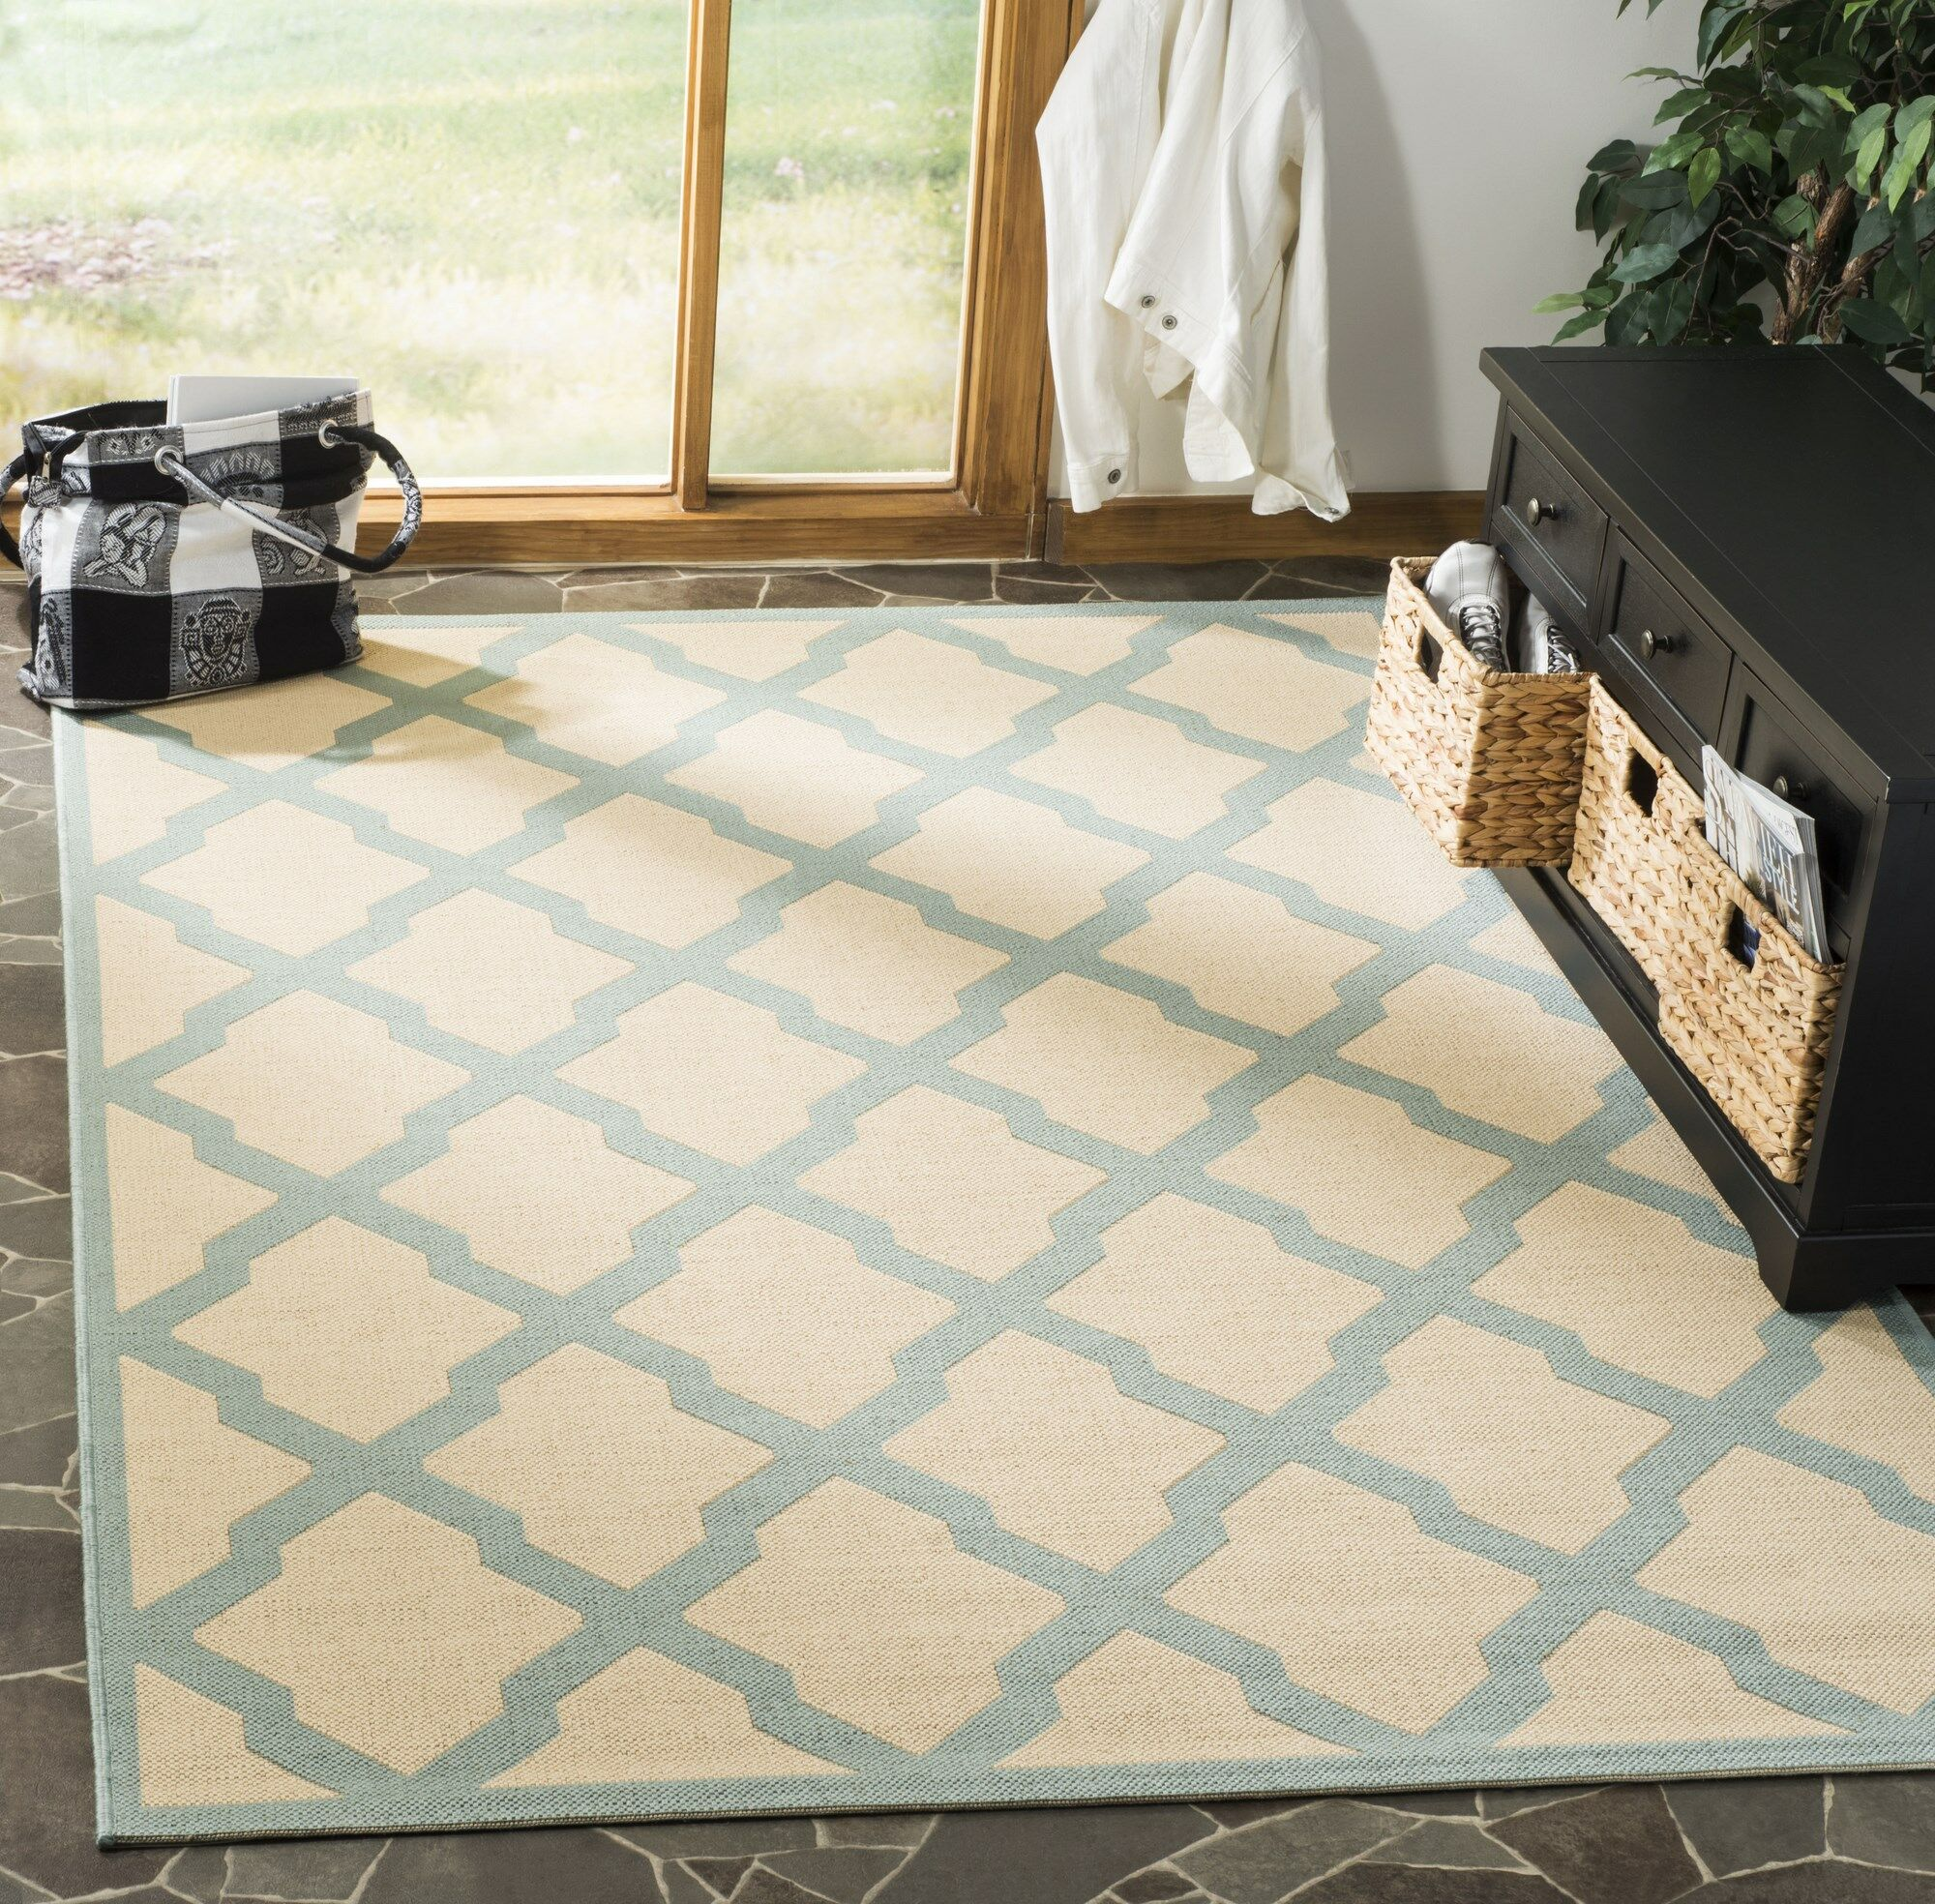 Cashion Cream/Aqua Area Rug Rug Size: Rectangle 5'1